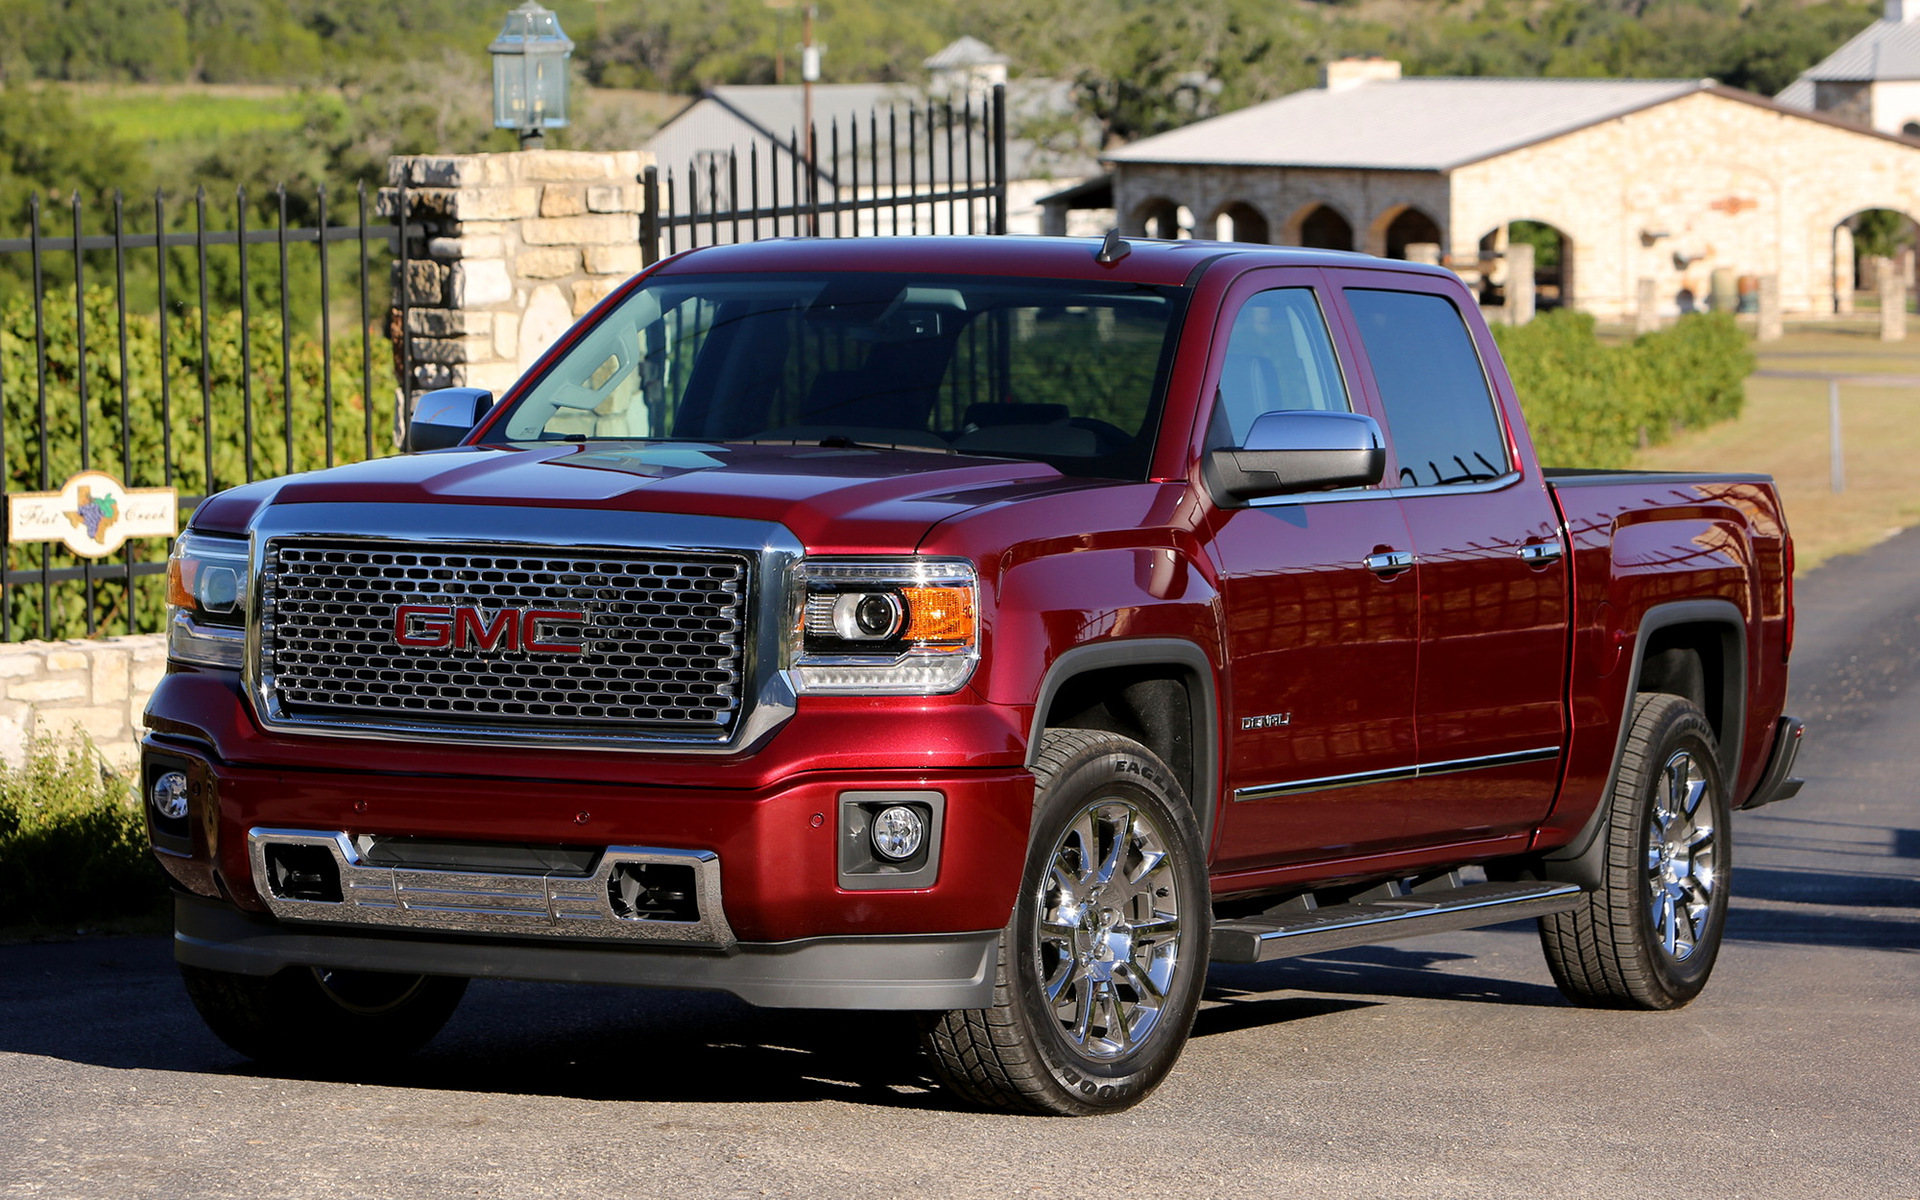 2016 Gmc Acadia Release Redesign likewise Rough Country GMC Sierra Suspension Leveling Kit PRD15561 in addition 2015 Gmc Canyon Interior Photo 564263 also 2017 Gmc Sierra 1500 Denali Ultimate Crew Cab Hd Wallpapers besides 2016 Gmc Suv With  fortable Third Row Seats. on 2014 gmc sierra all terrain towing